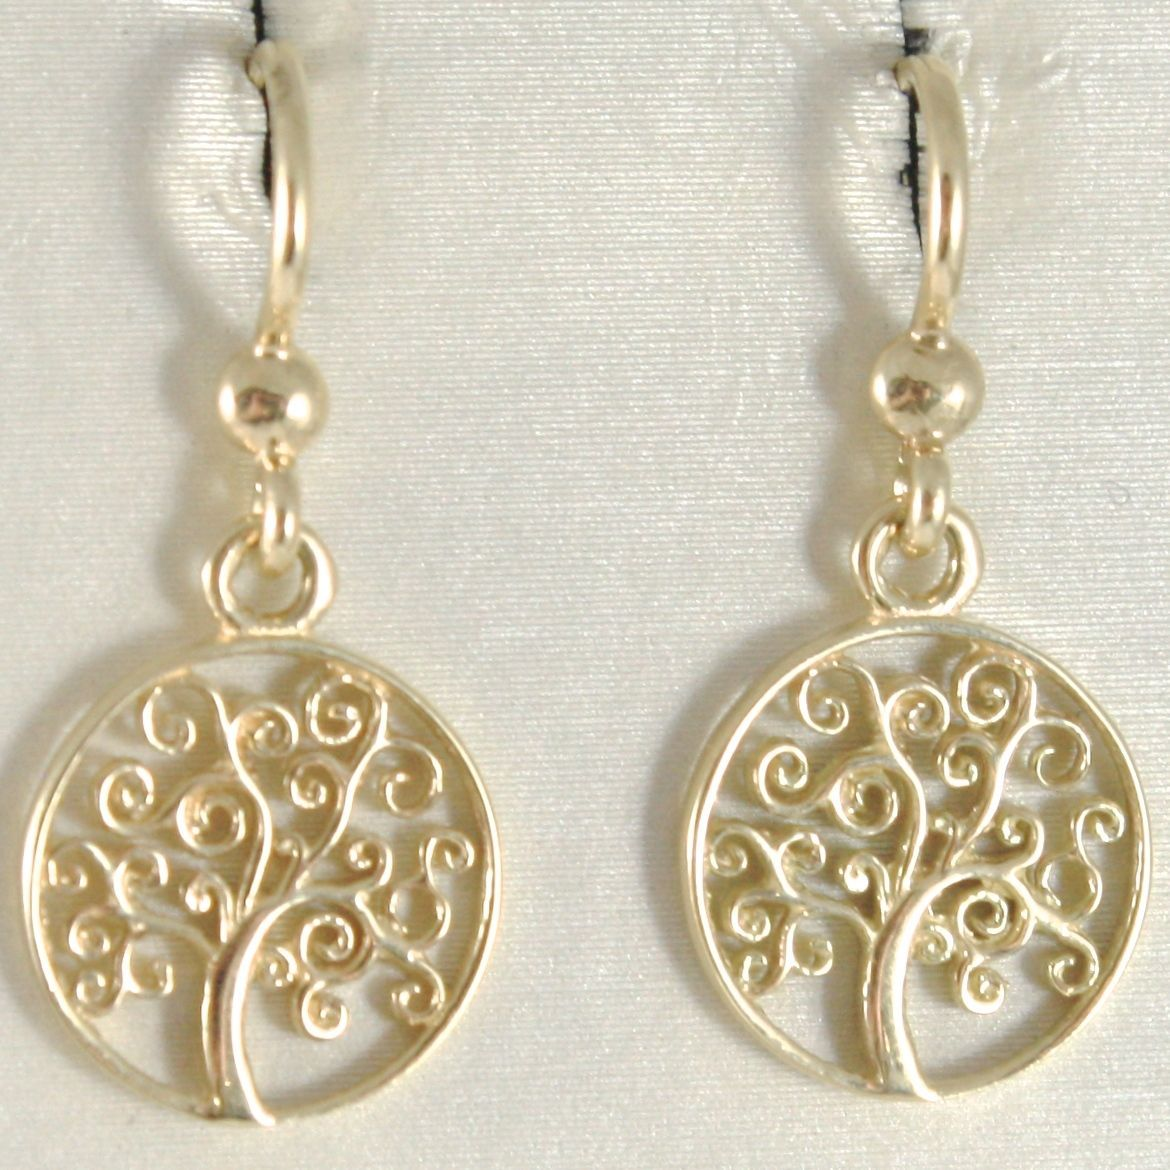 18K YELLOW GOLD PENDANT EARRINGS WITH BEAUTIFUL TREE OF LIFE, MADE IN ITALY